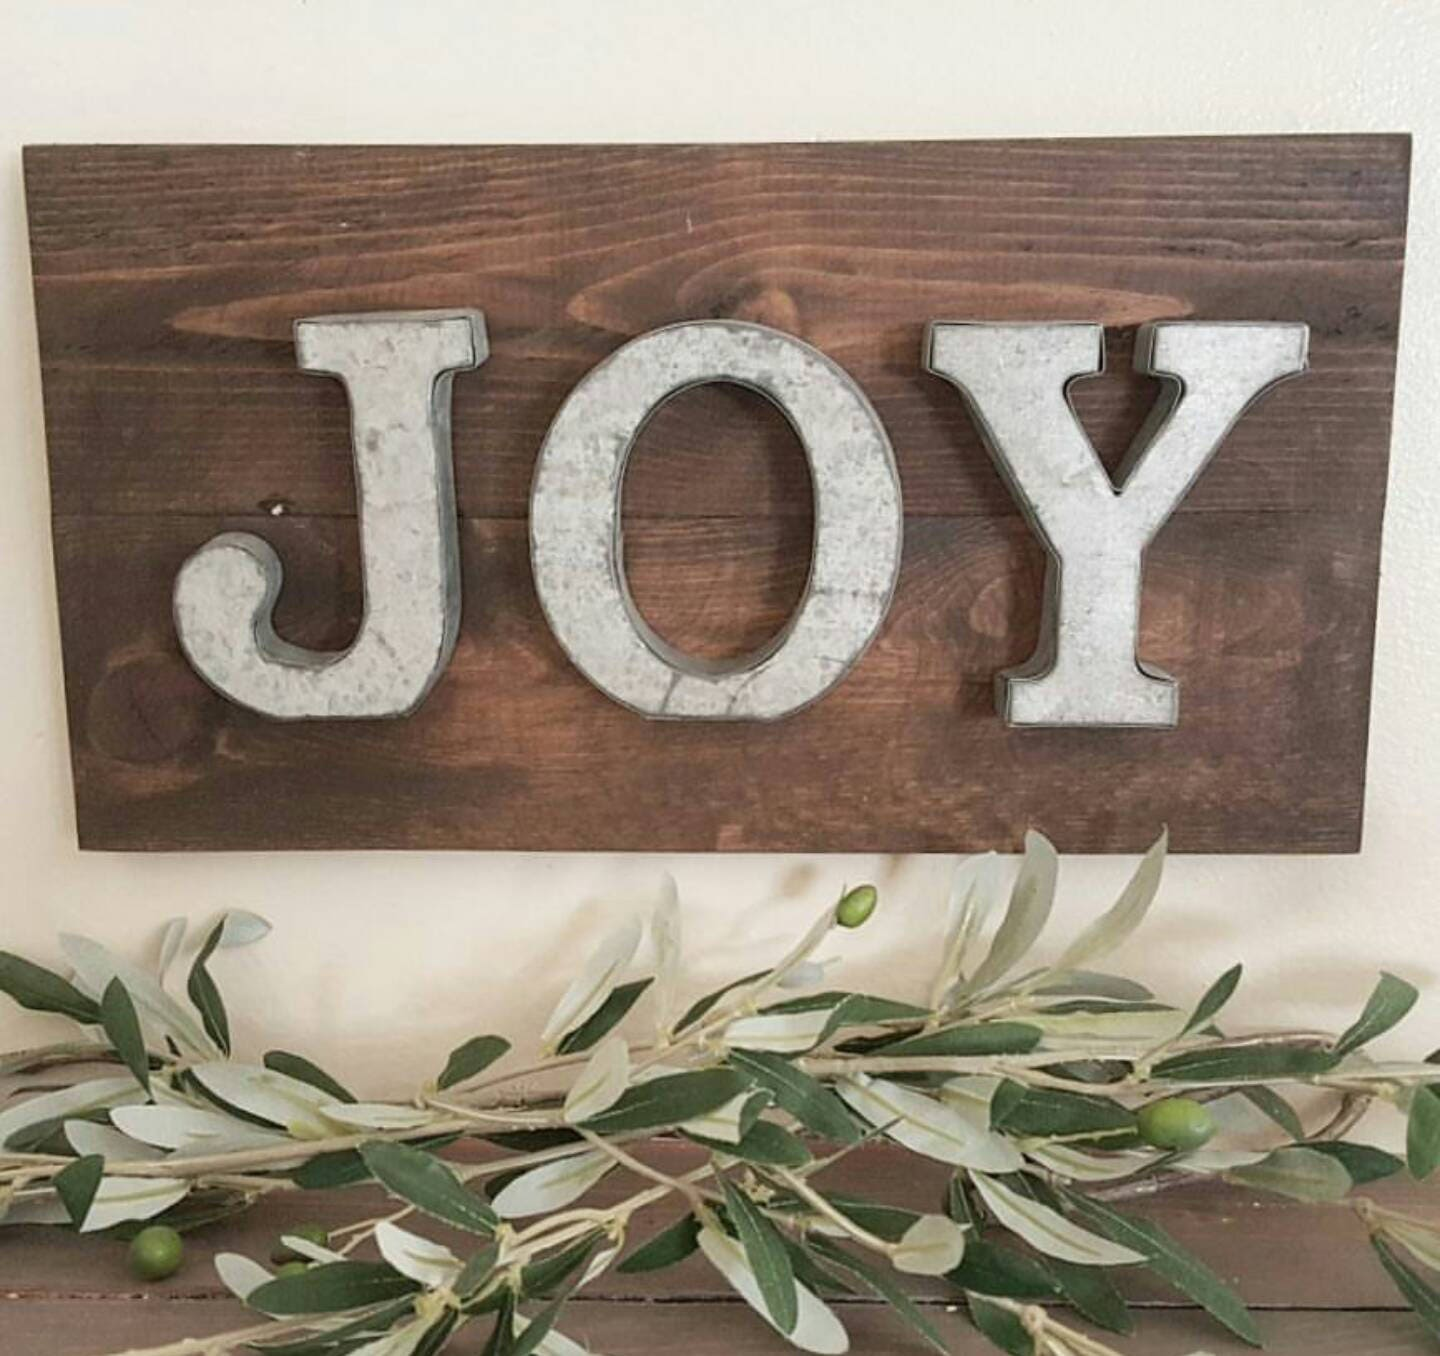 joy sign mantel decor wall decor shelf decor. Black Bedroom Furniture Sets. Home Design Ideas